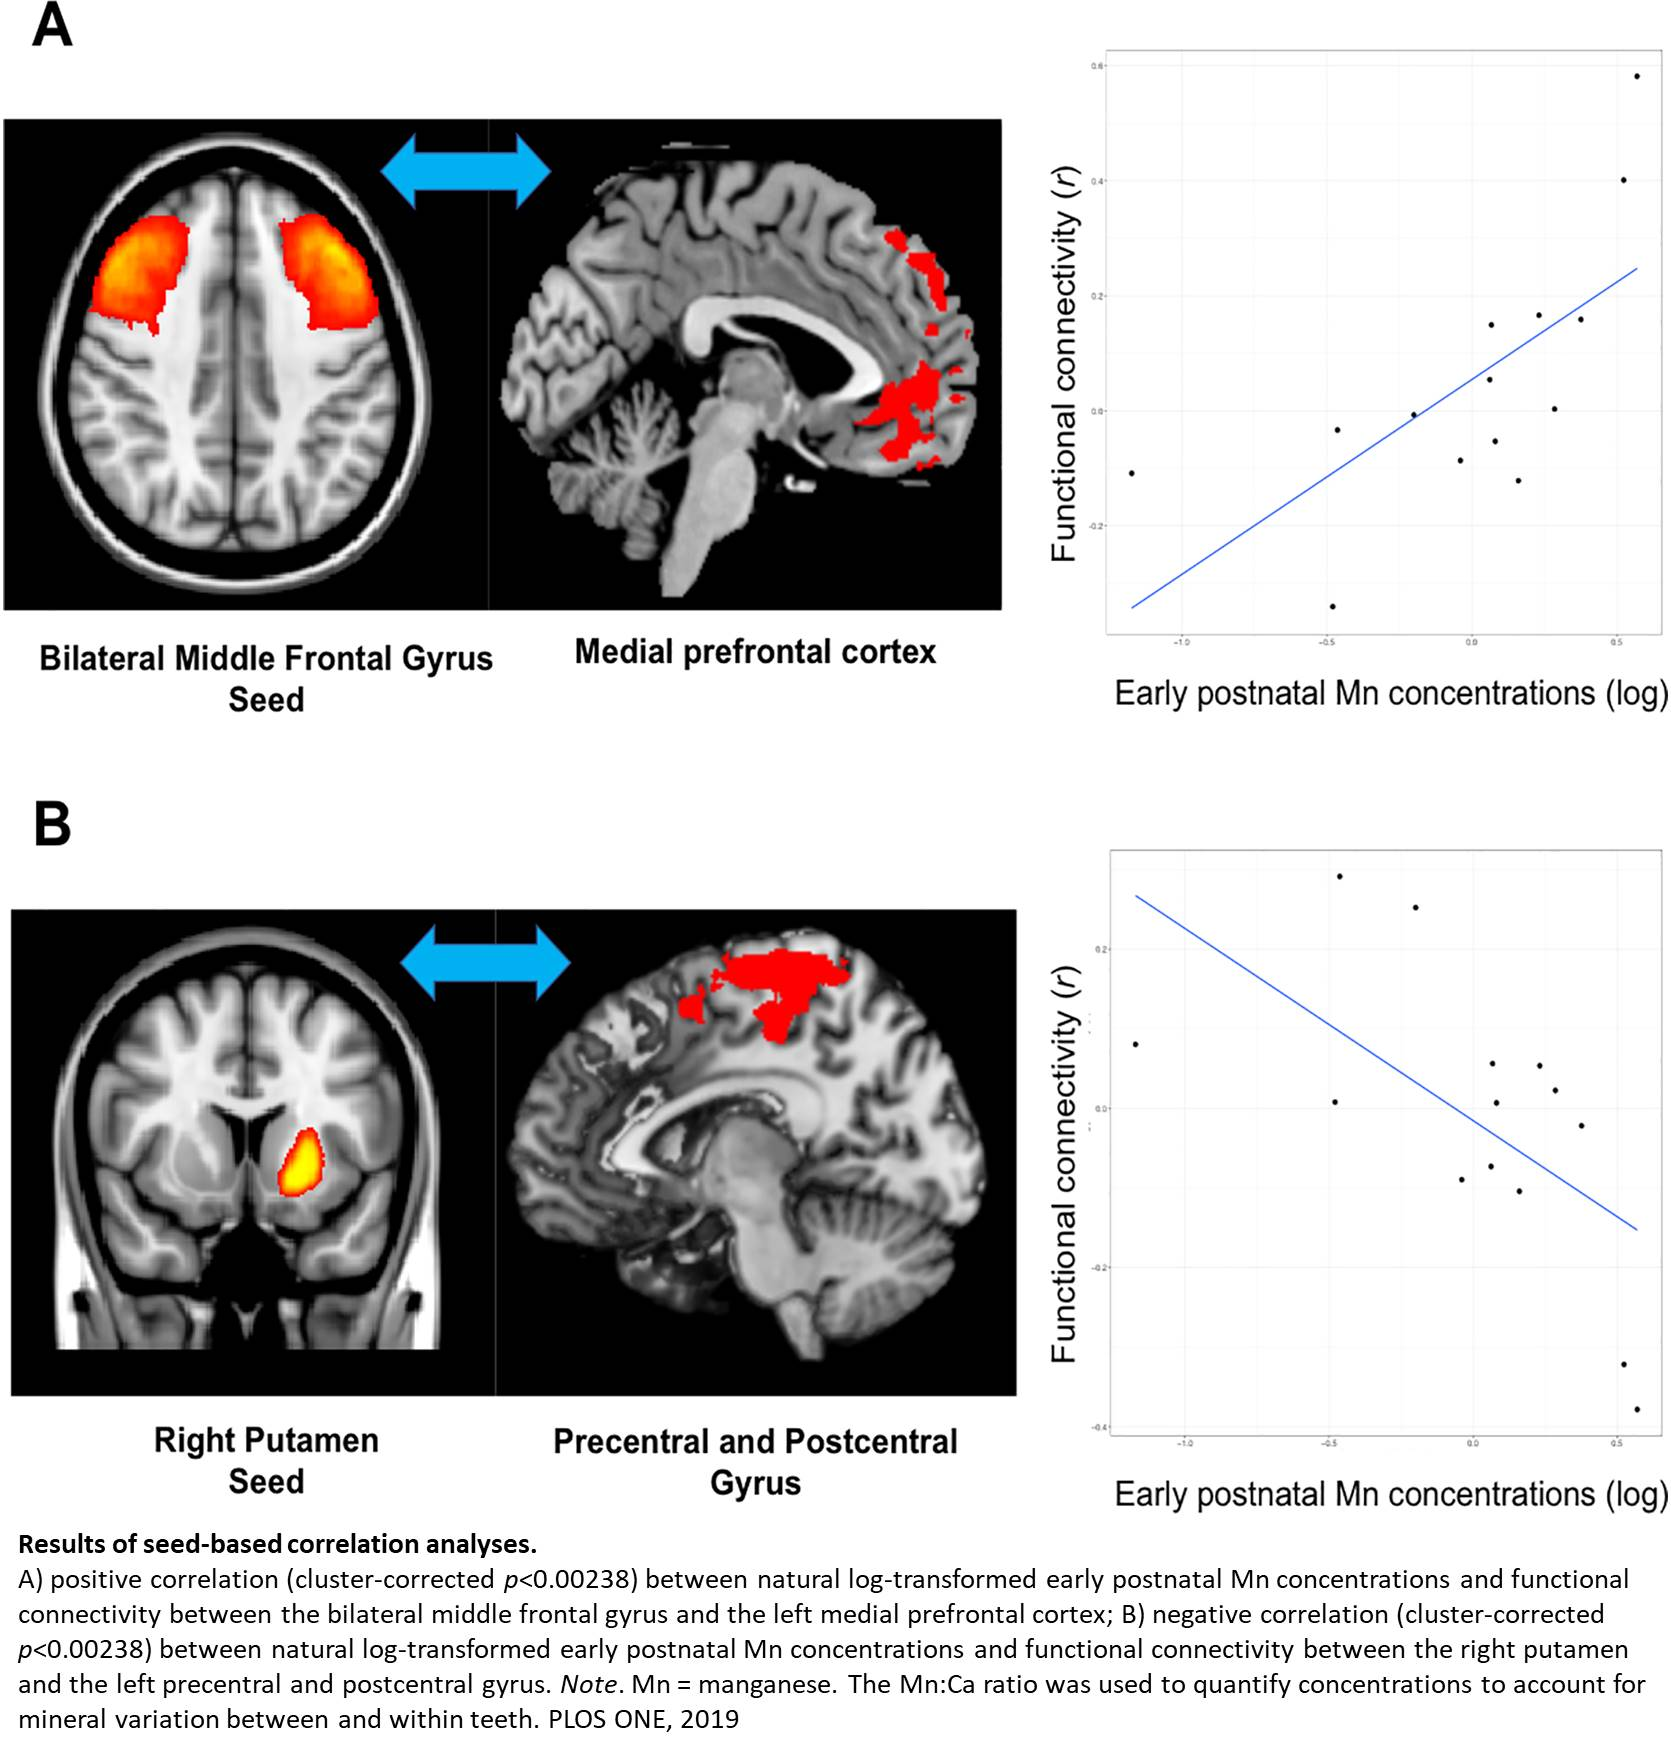 Teen's exposure to manganese early could affect cognitive ability and motor control